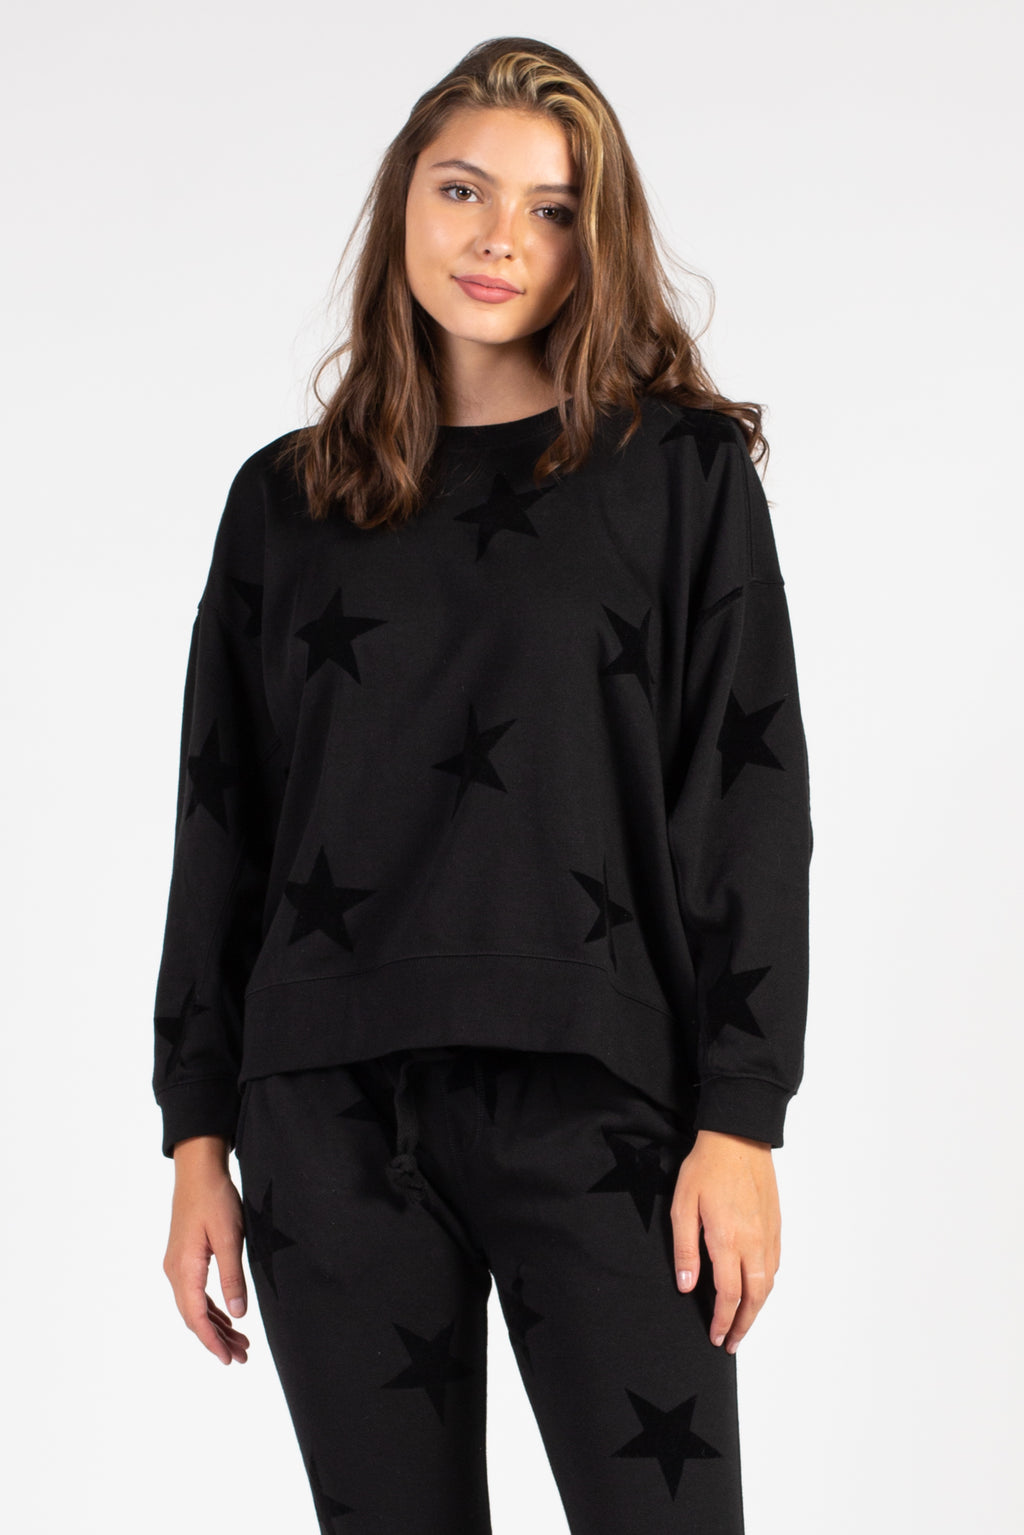 Star Flocking Pullover Sweatshirt